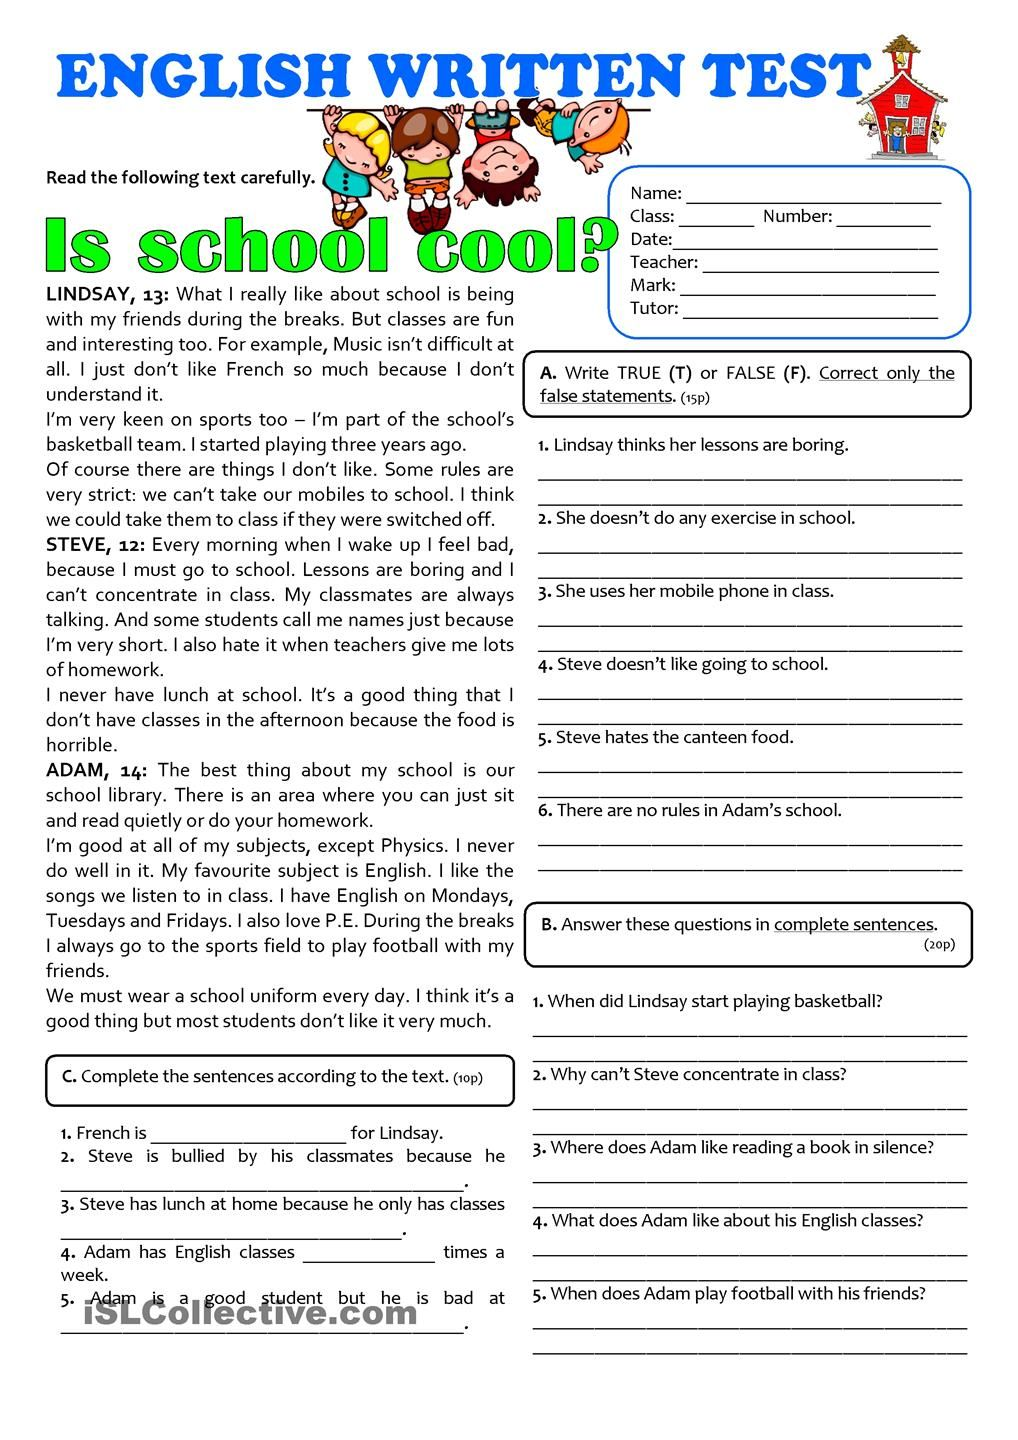 IS SCHOOL COOL? - 7th grade TEST | Exercise sheet ...